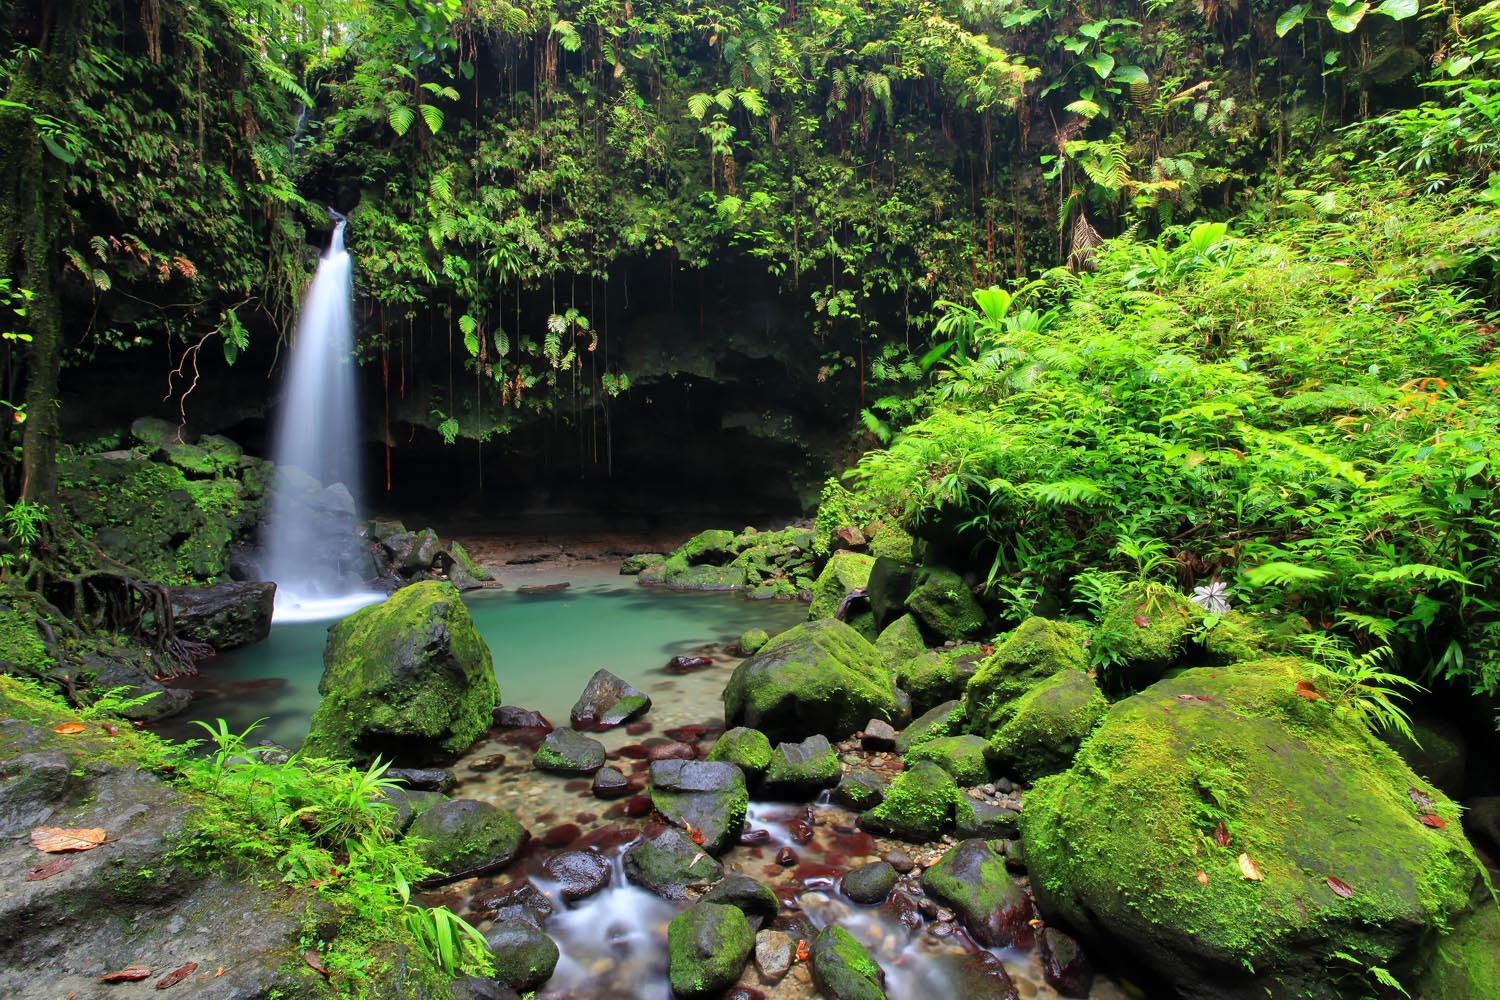 Pristine, mineral-rich water, clean forest air, and the embrace of nature — Dominica's Emerald Pool offers natural therapy for body and soul. Photo by Emperorcosar/Shutterstock.com